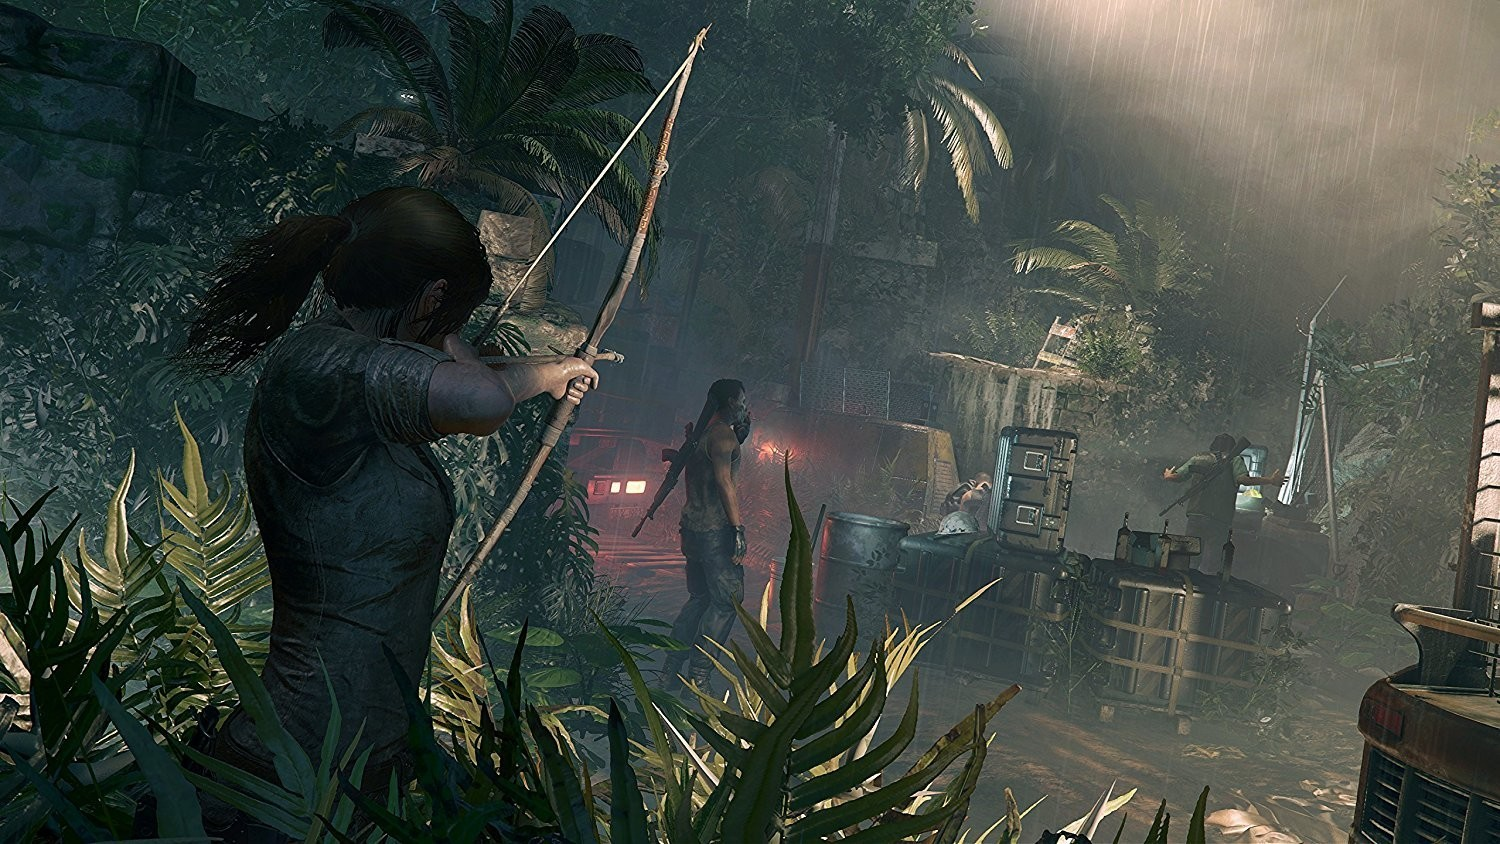 shadow of the tomb raider shadow of the tomb raider Shadow Of The Tomb Raider Shadow Of The Tomb Raider